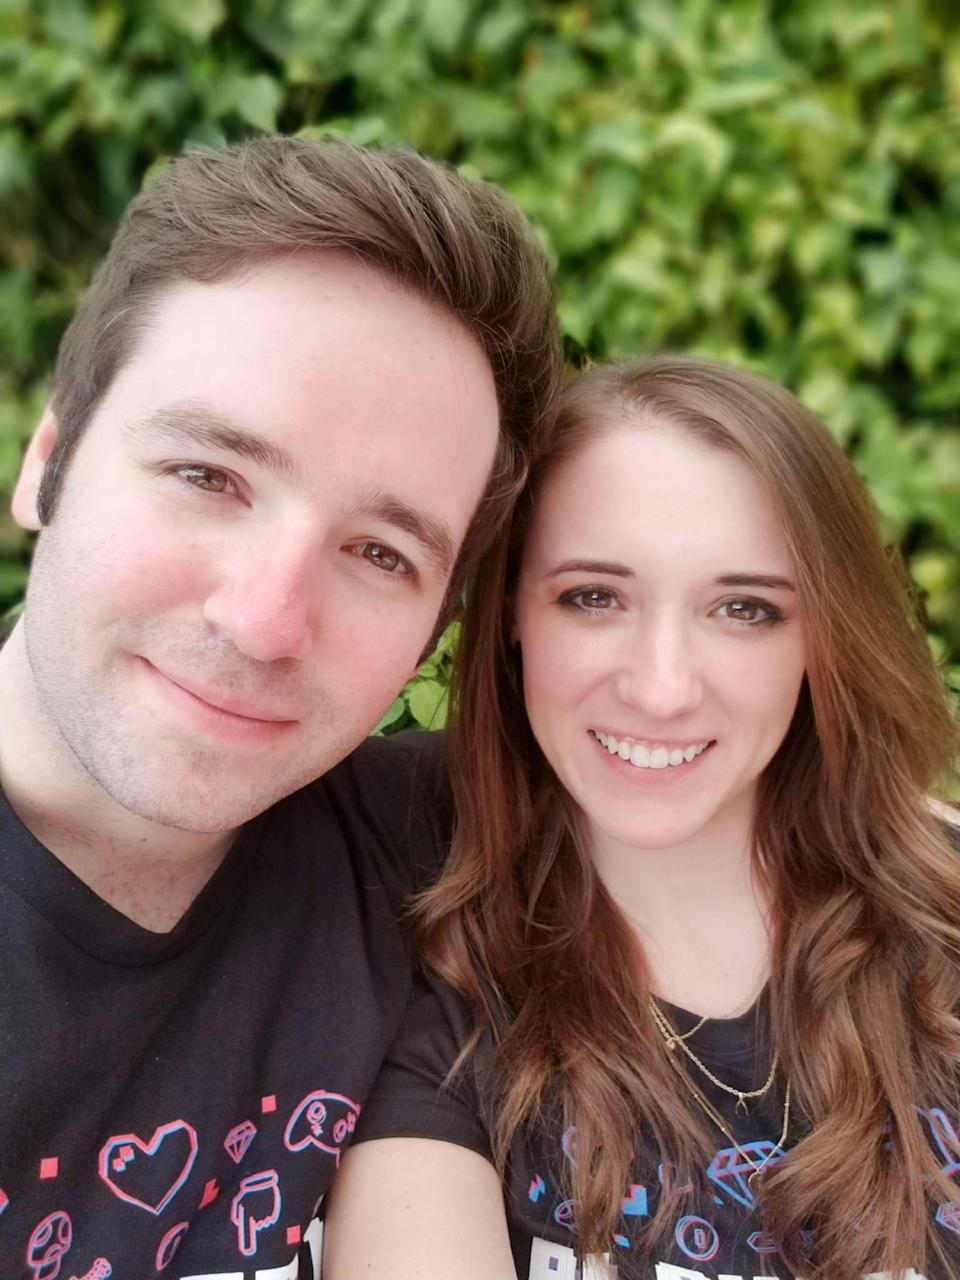 Josh Atkinson and Alexis Olson pose for a photo during a first date at Disney World in February 2019.